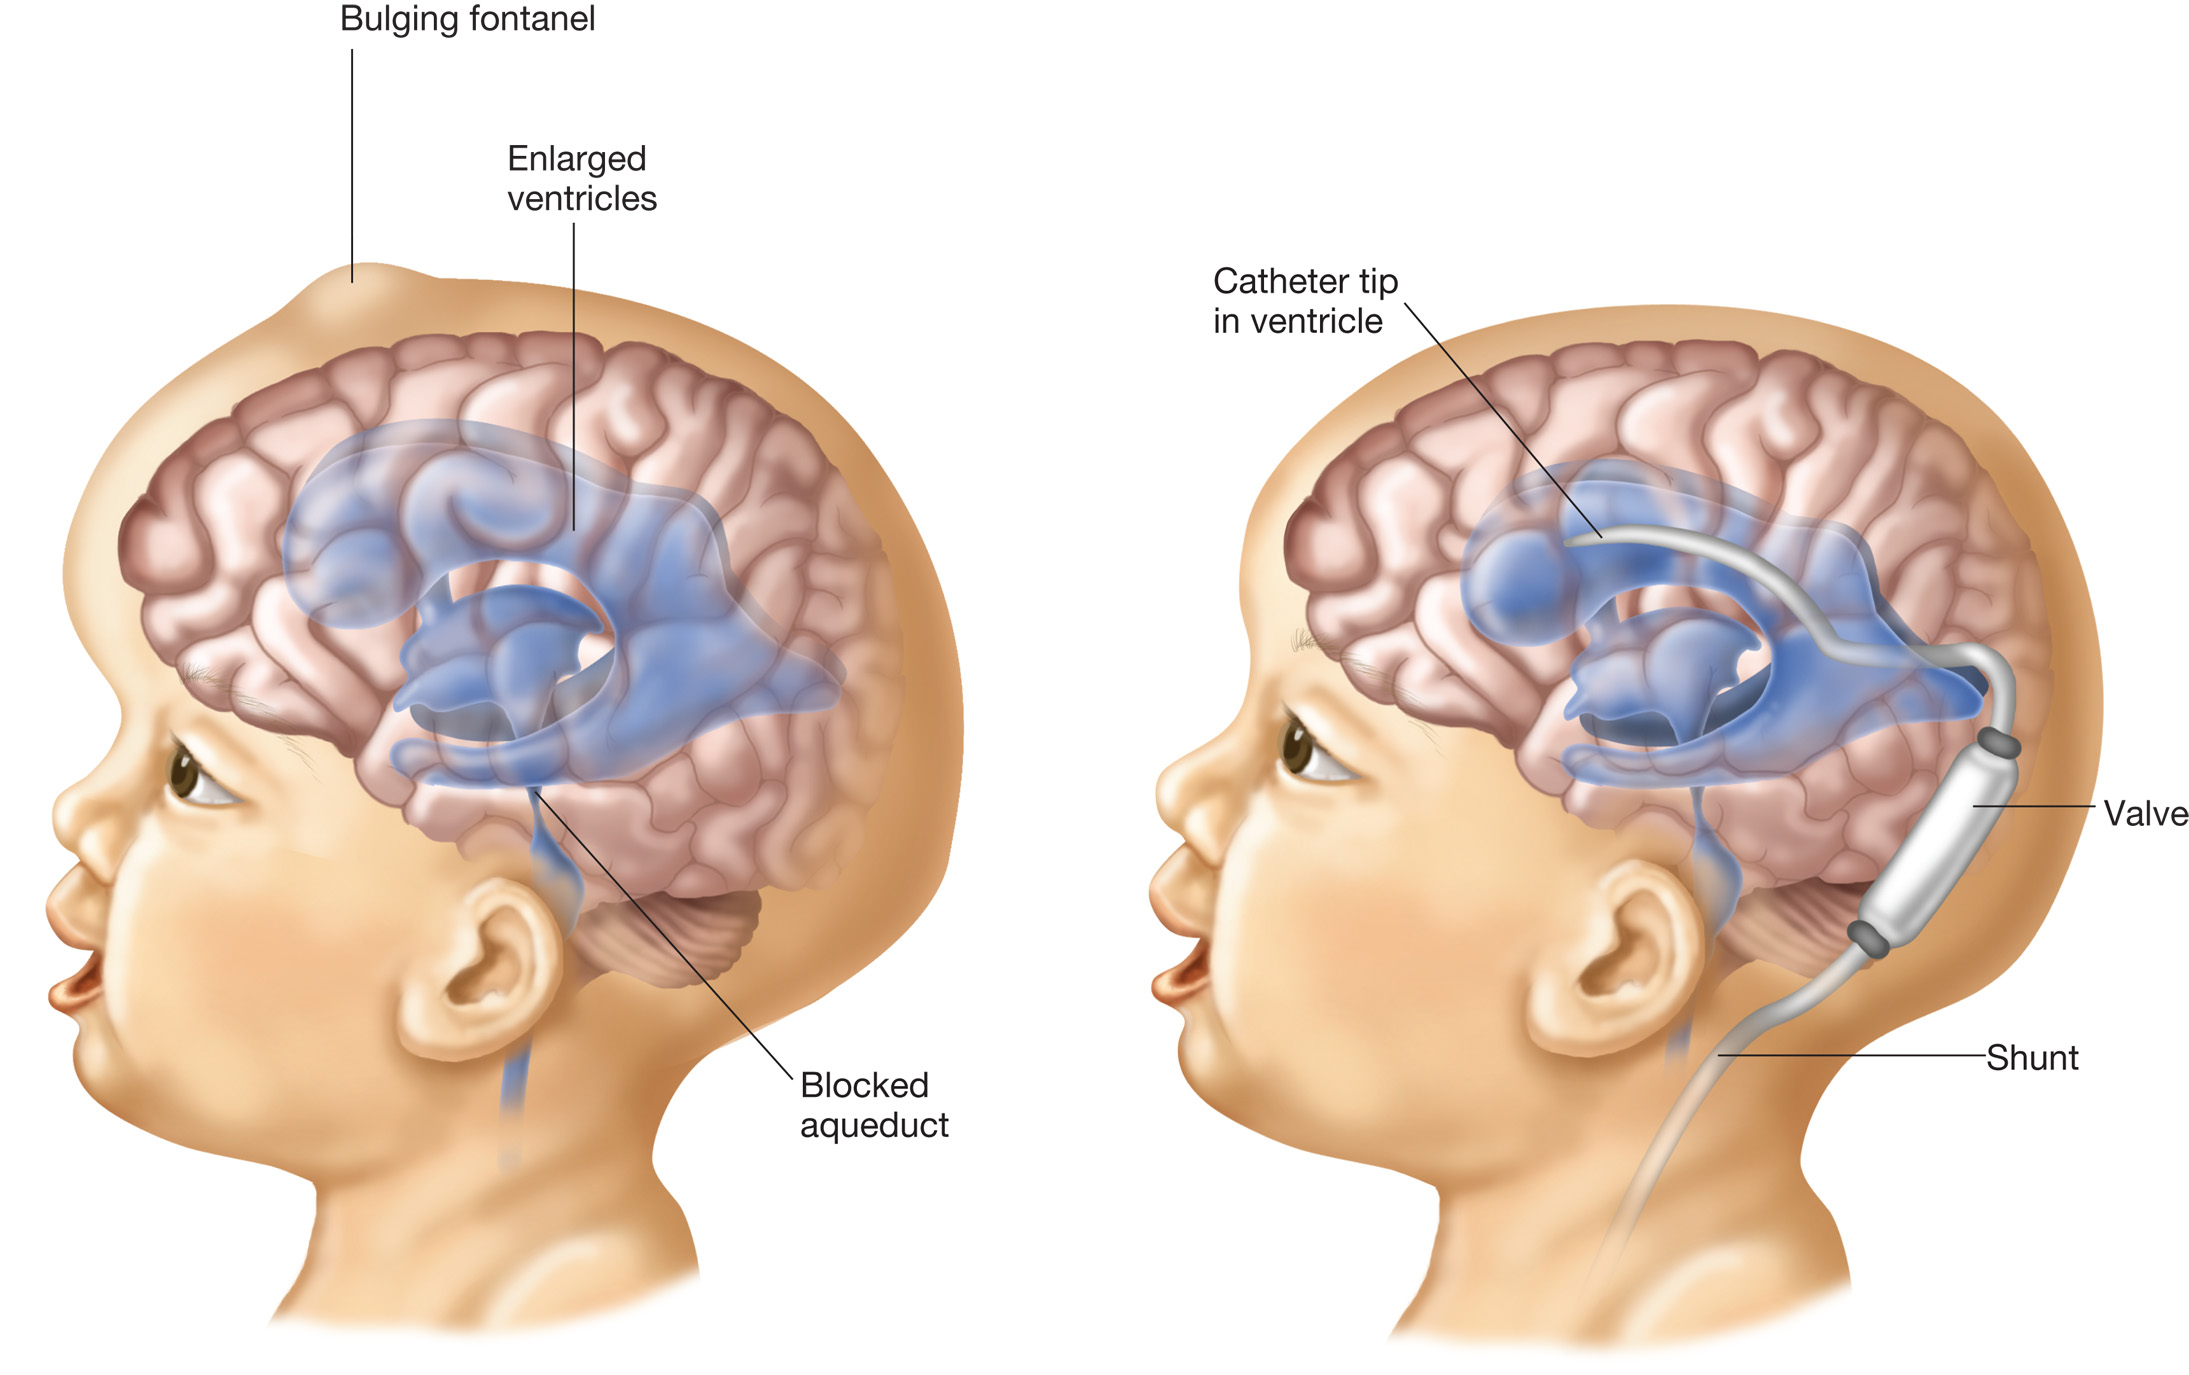 hydrocephalus the figure on the left is a child with the